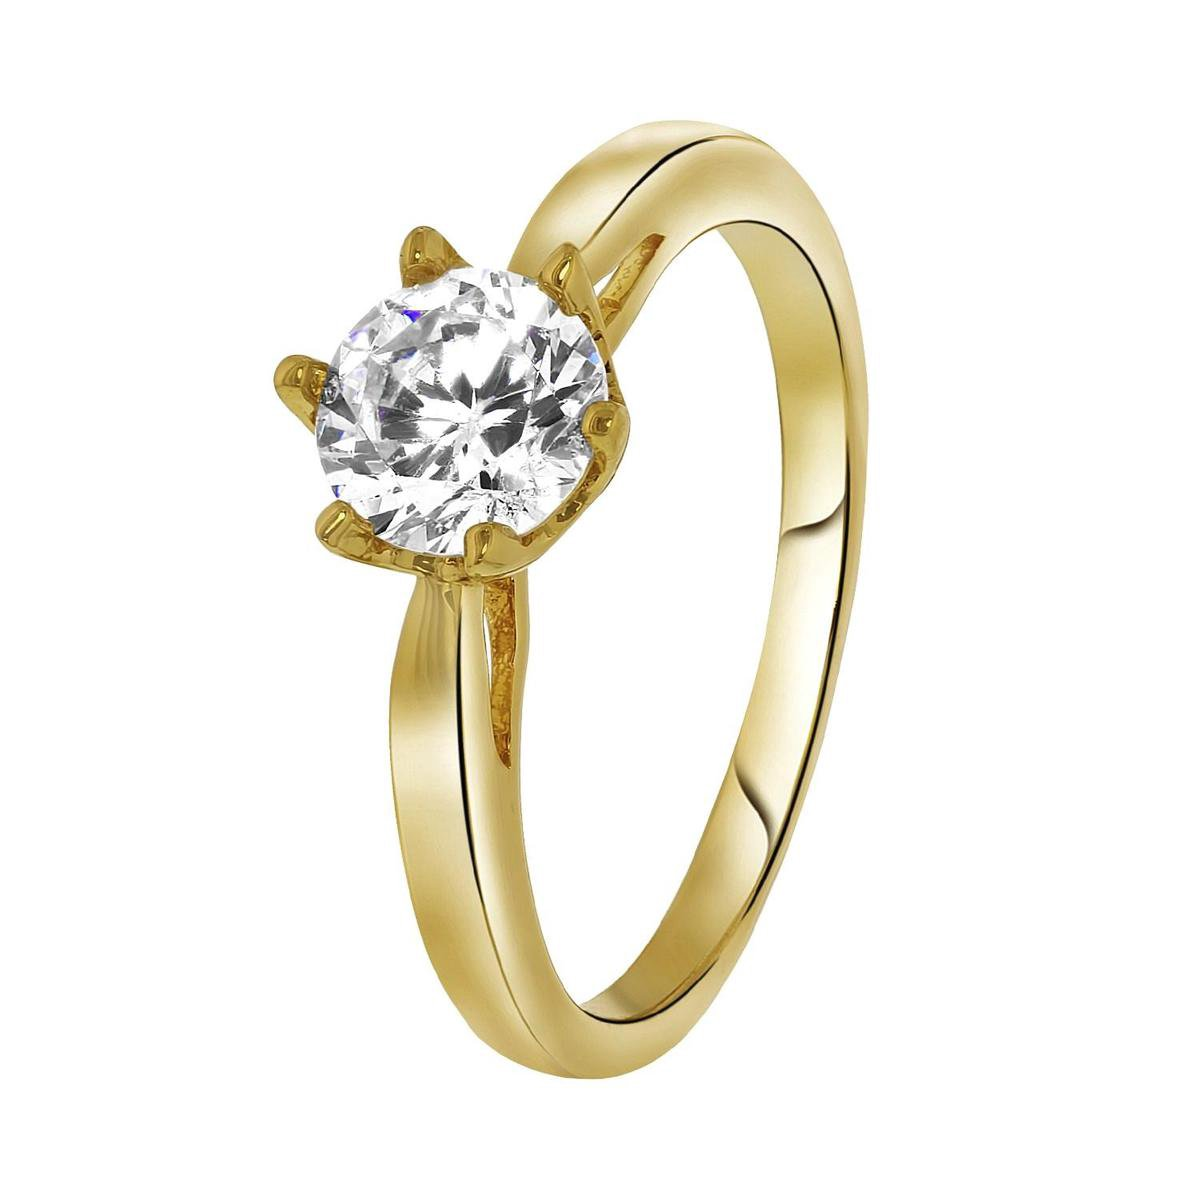 Lucardi goldplated ring solitair - zirkonia - Lucardi